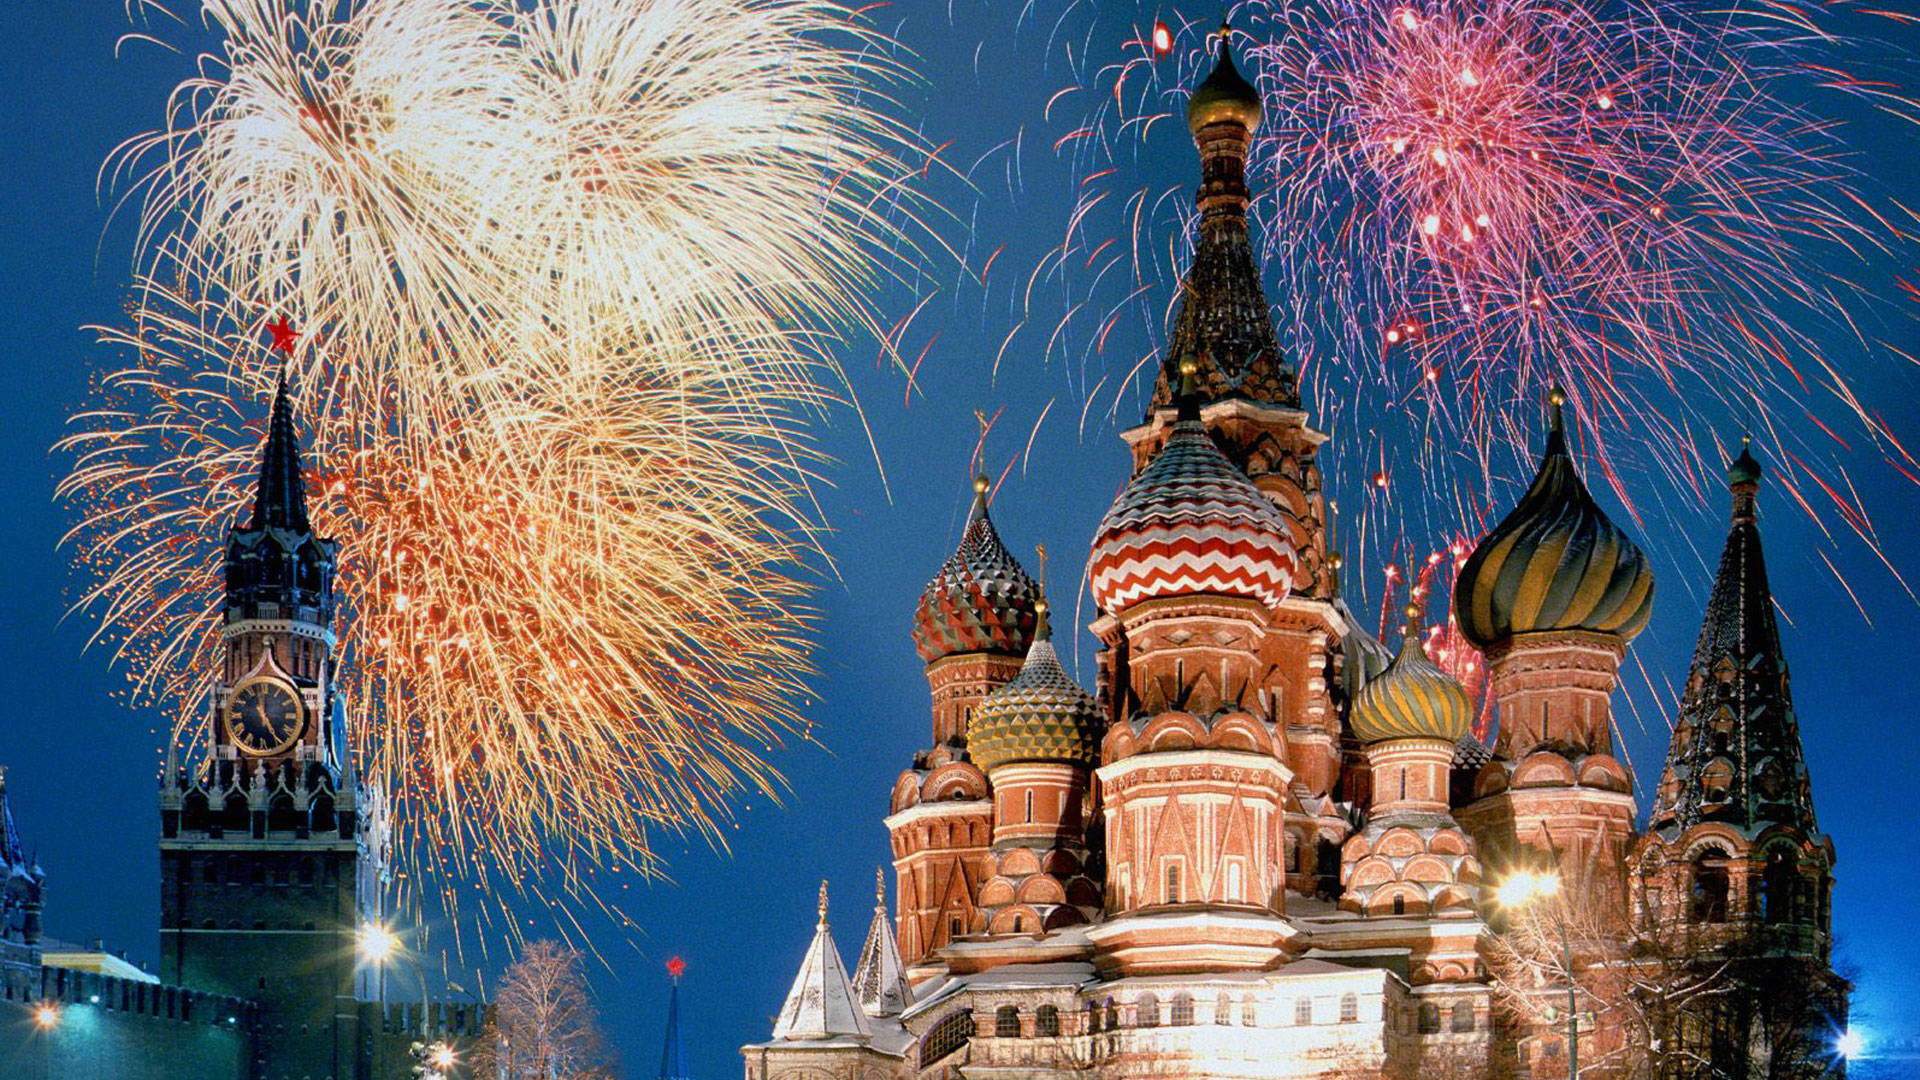 TOP PLACES TO CELEBRATE NEW YEARS EVE PHOTOS